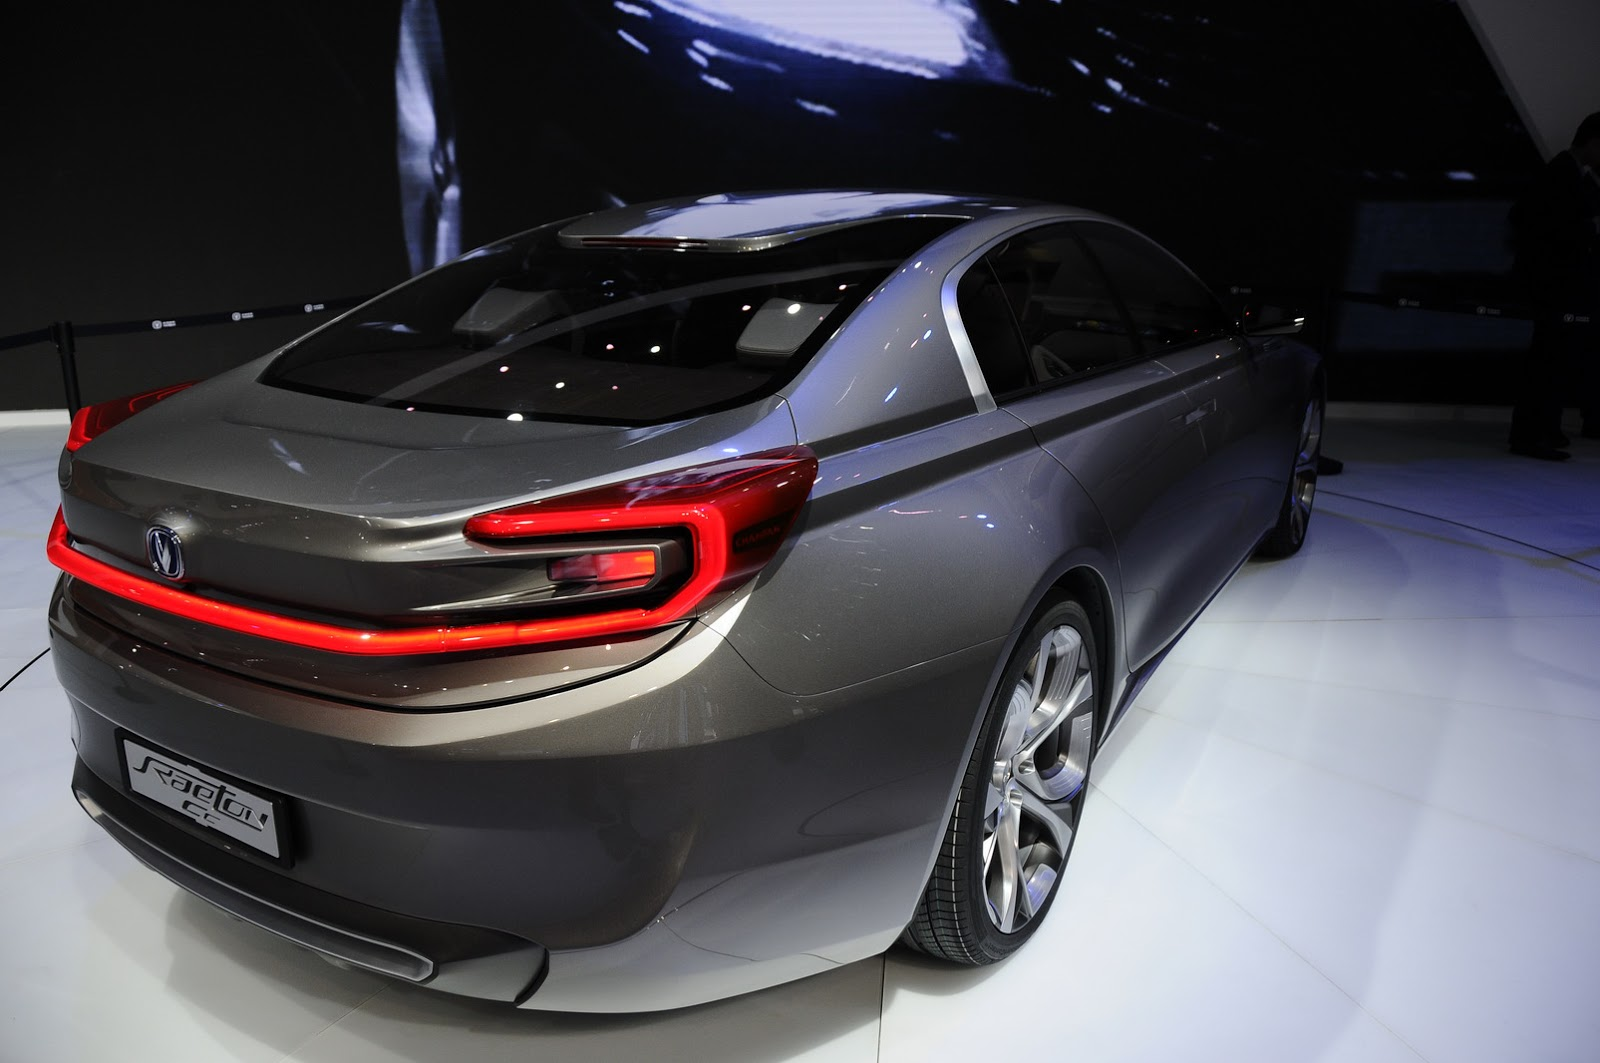 Changan Raeton CC Concept Is One Of China's Better Looking ...